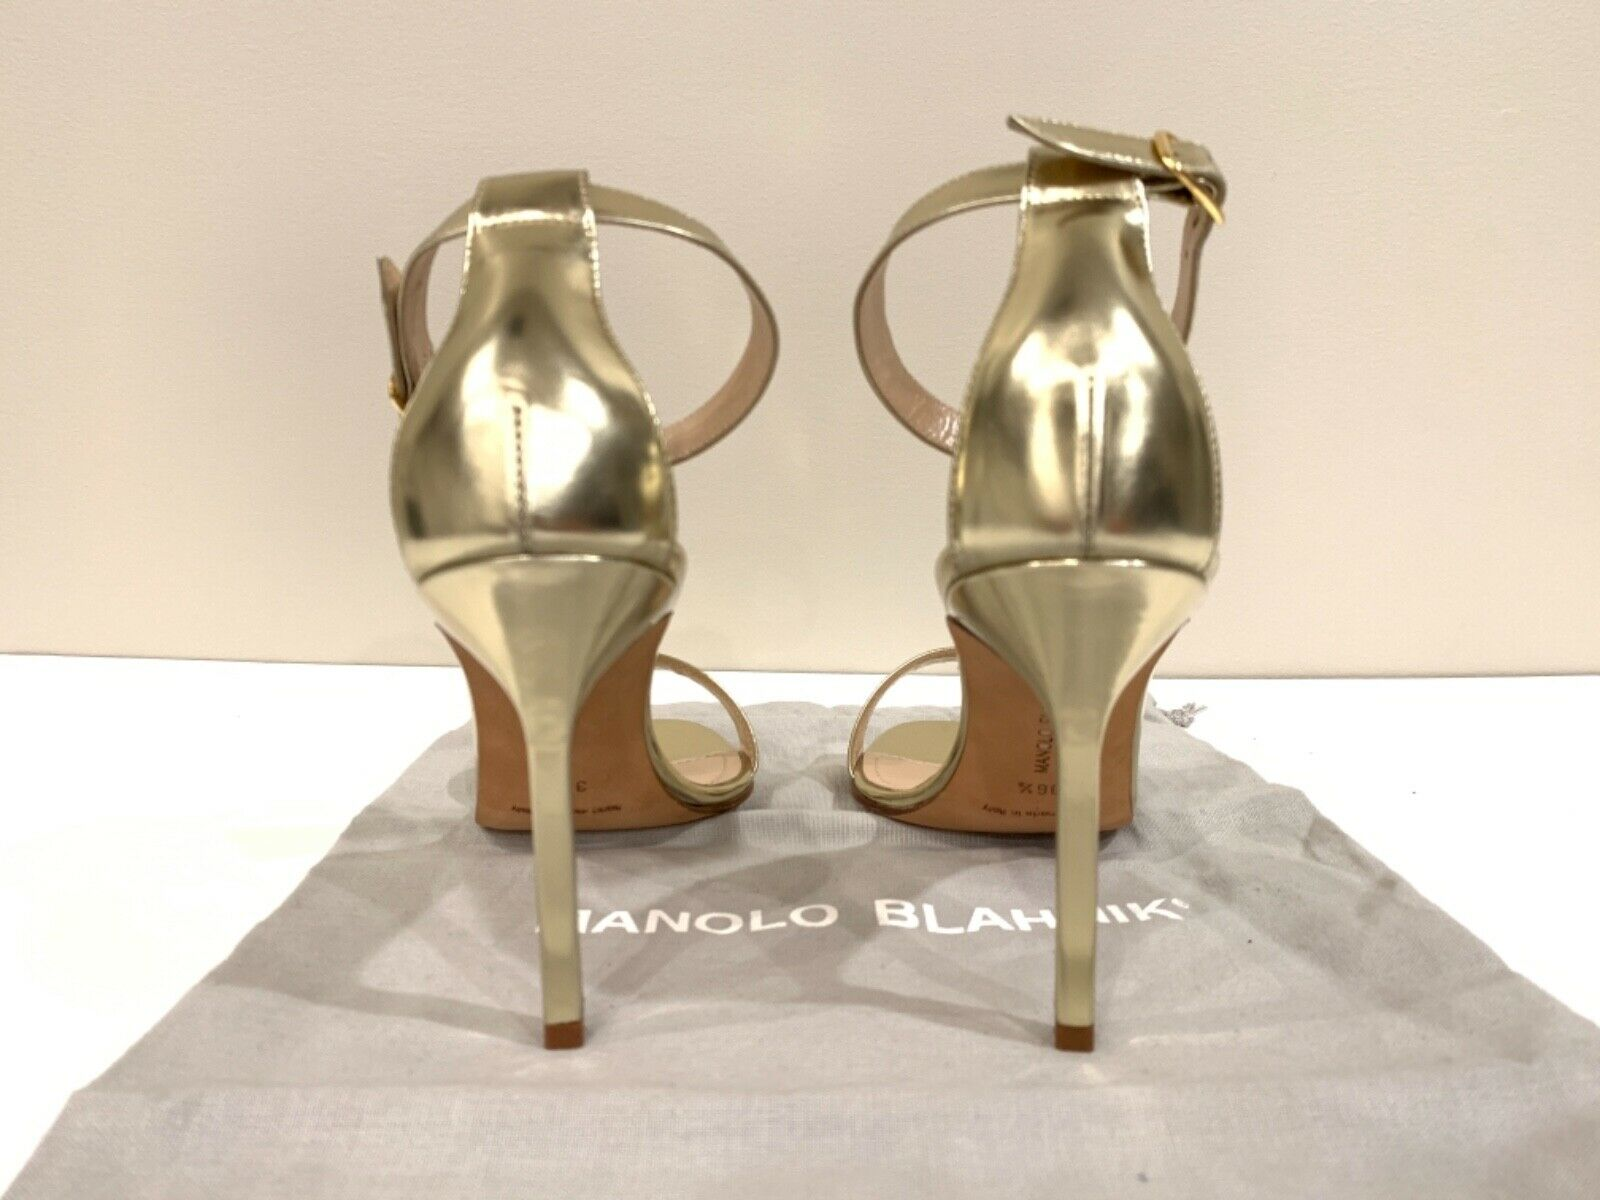 Manolo Blahnik Chaos Ankle Strap Heels Sandals or  36 36 36 1 2 Authentic New 721904